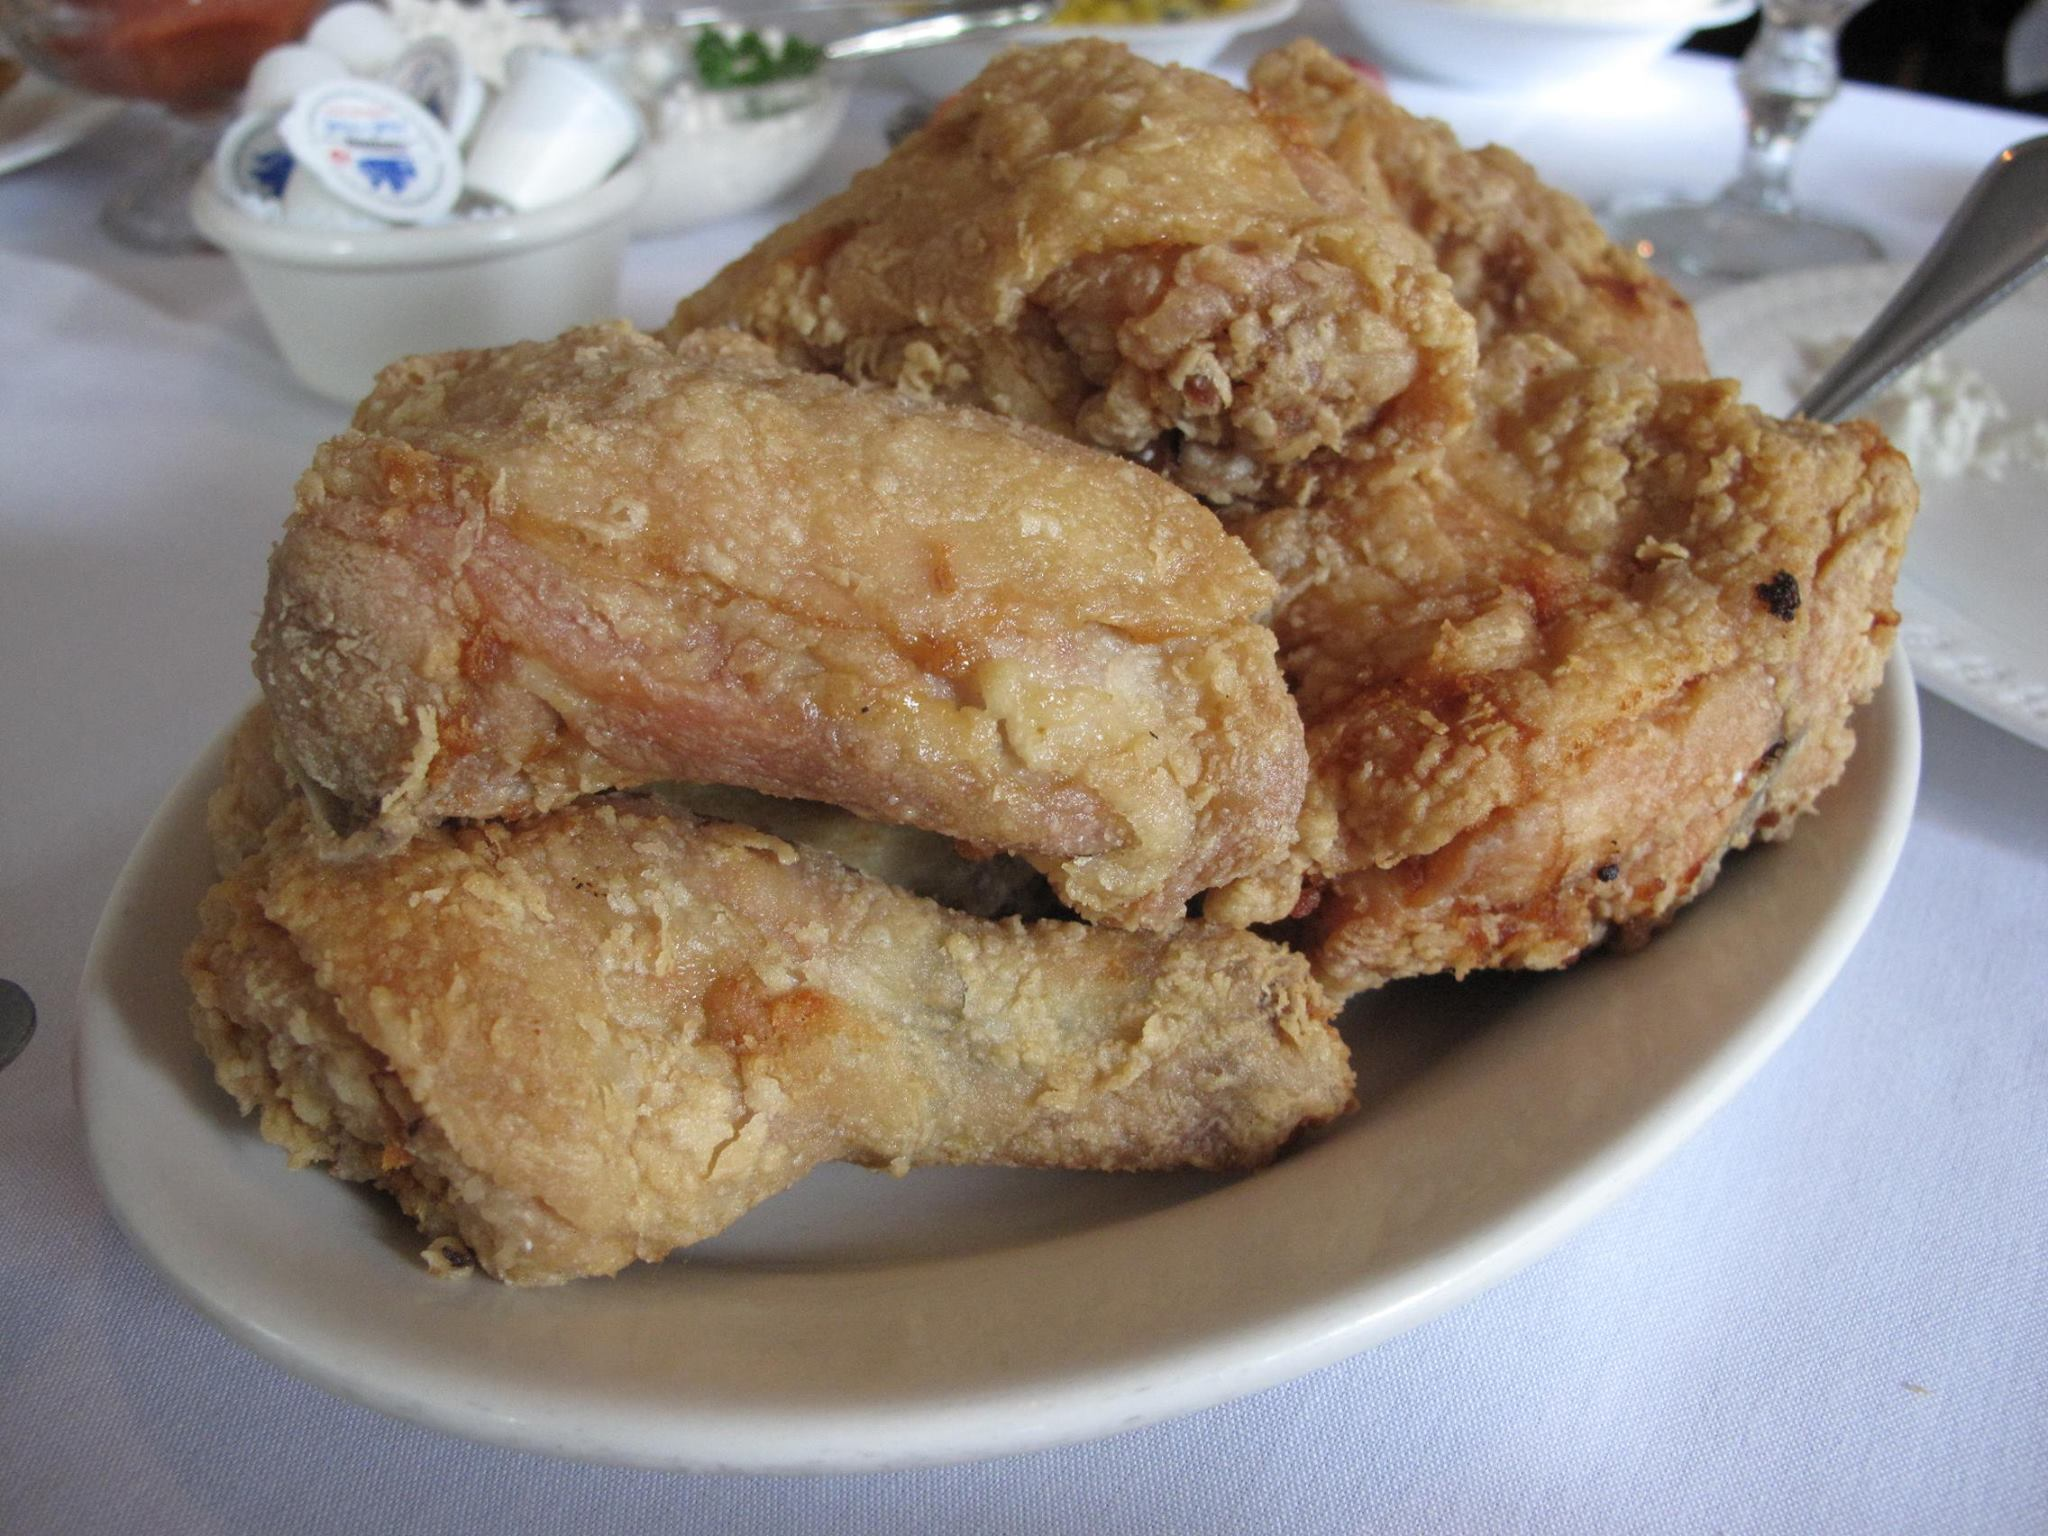 The keys to the fried chicken at Hollyhock Hill of Indianapolis, named one of America's 21 best fried chickens: fresh bird, flour coating, and lard.